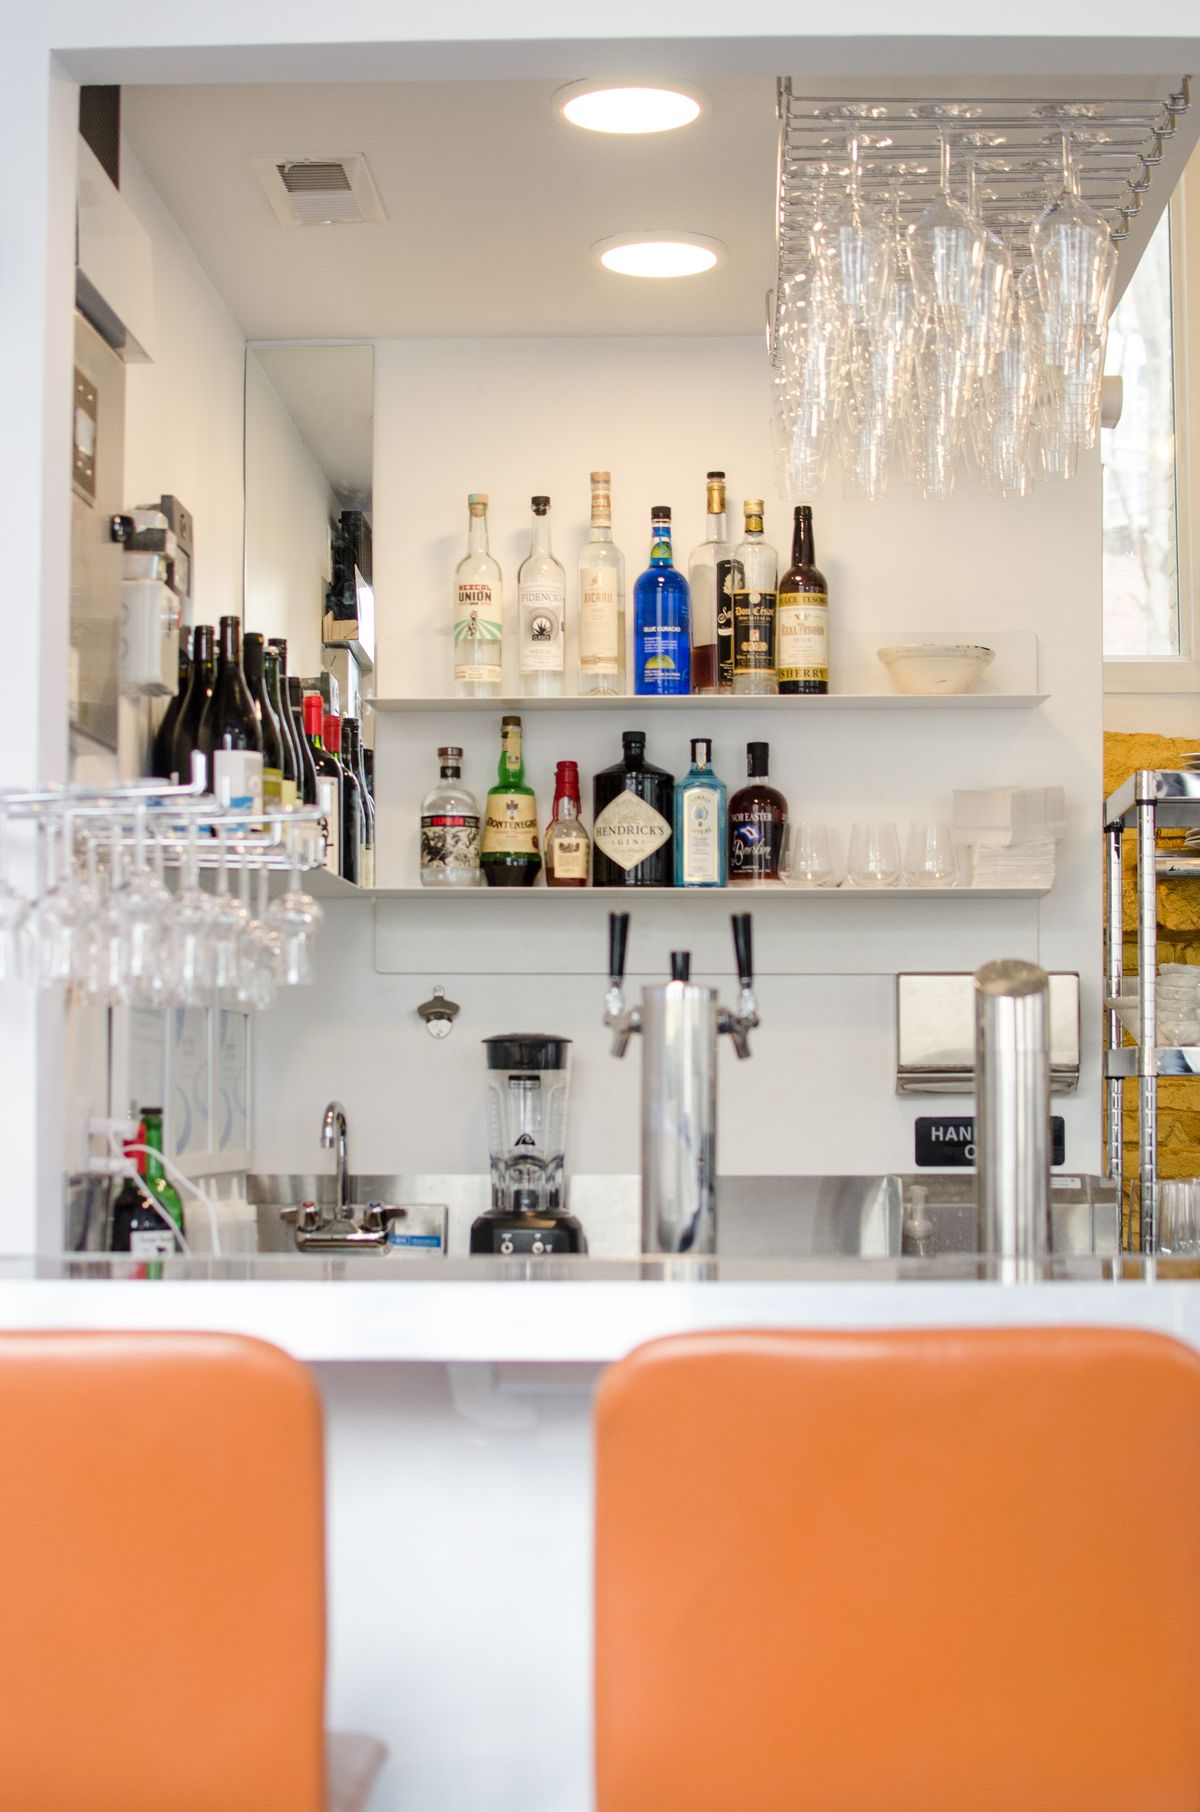 A vertical image shows a slice of a small restaurant's interior, with orange stools at a white bar and two small shelves of liquor